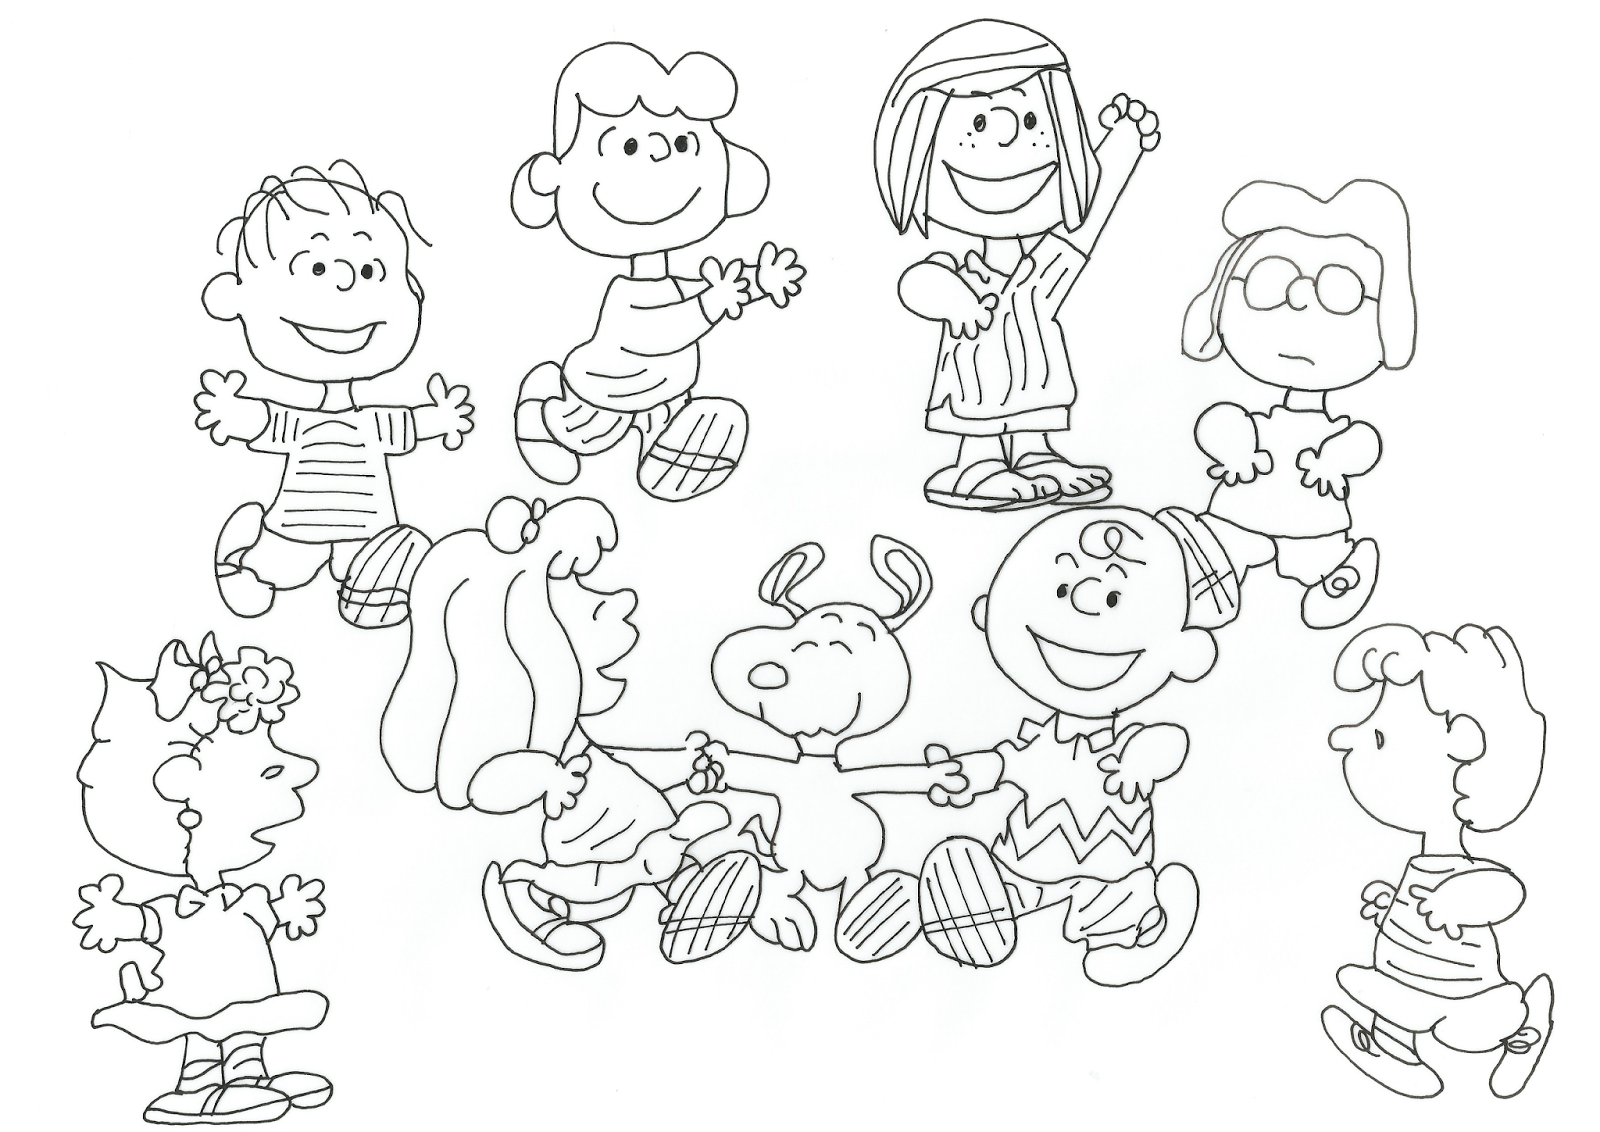 free coloring pages for april : Charlie Brown Whole Peanuts Gang Free Coloring Page